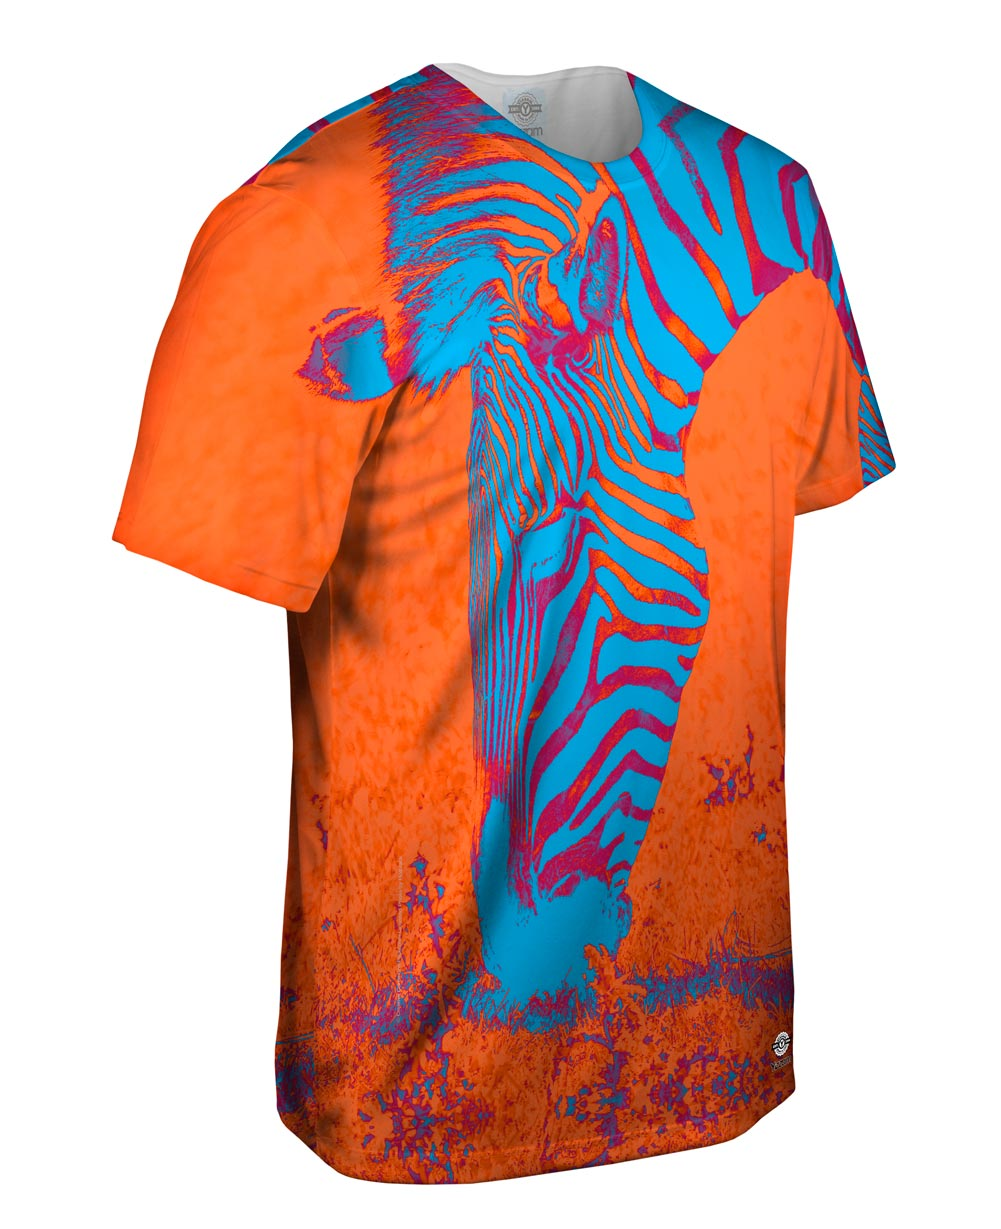 Yizzam neon orange zebra new men unisex tee shirt xs s for Best website to sell t shirts